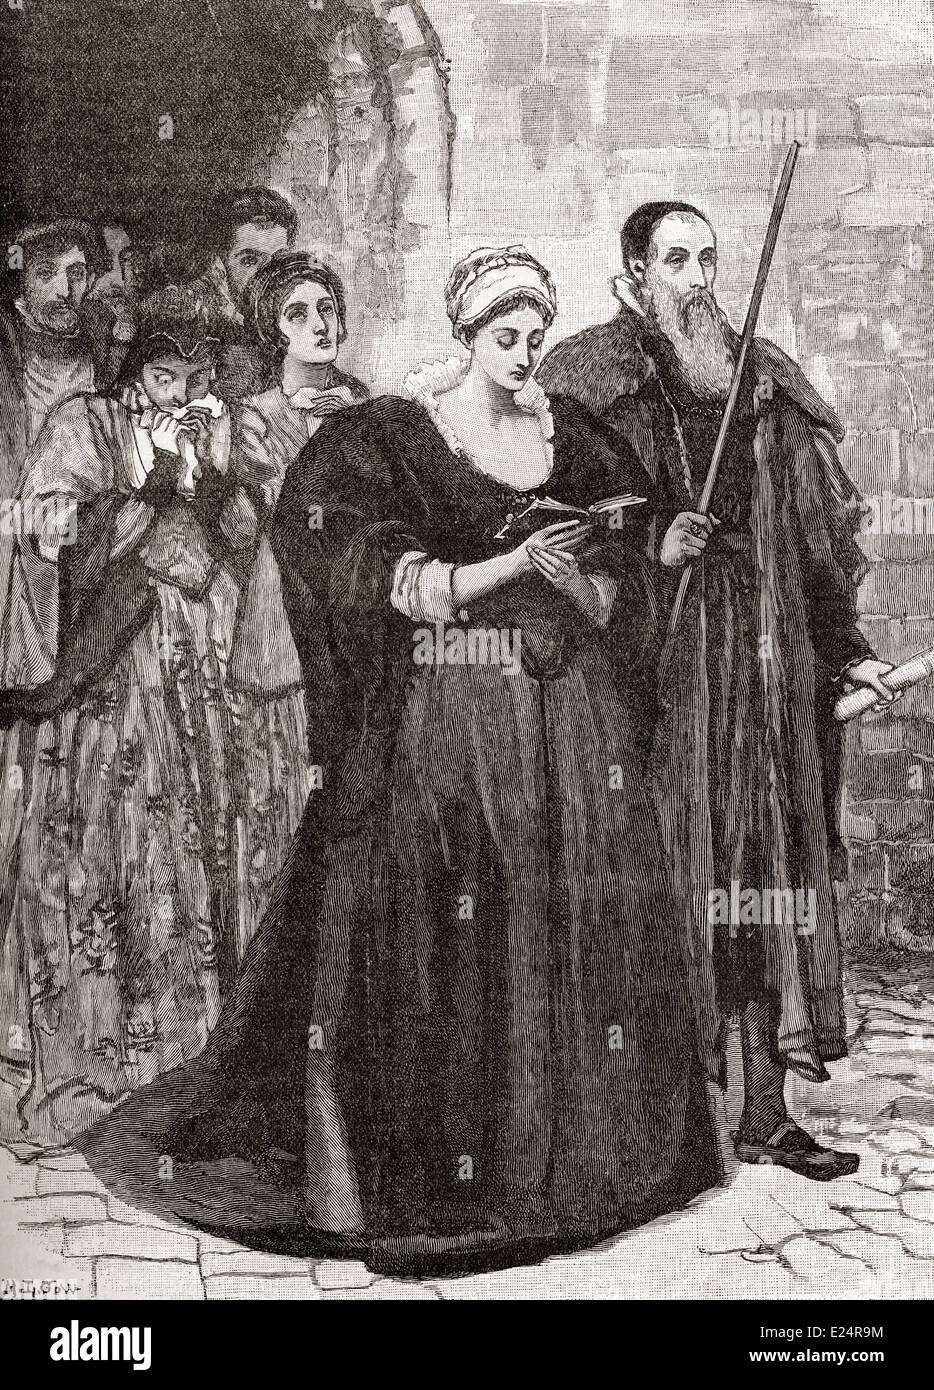 Lady Jane Grey on her way to the scaffold after being convicted of high treason. - Stock Image